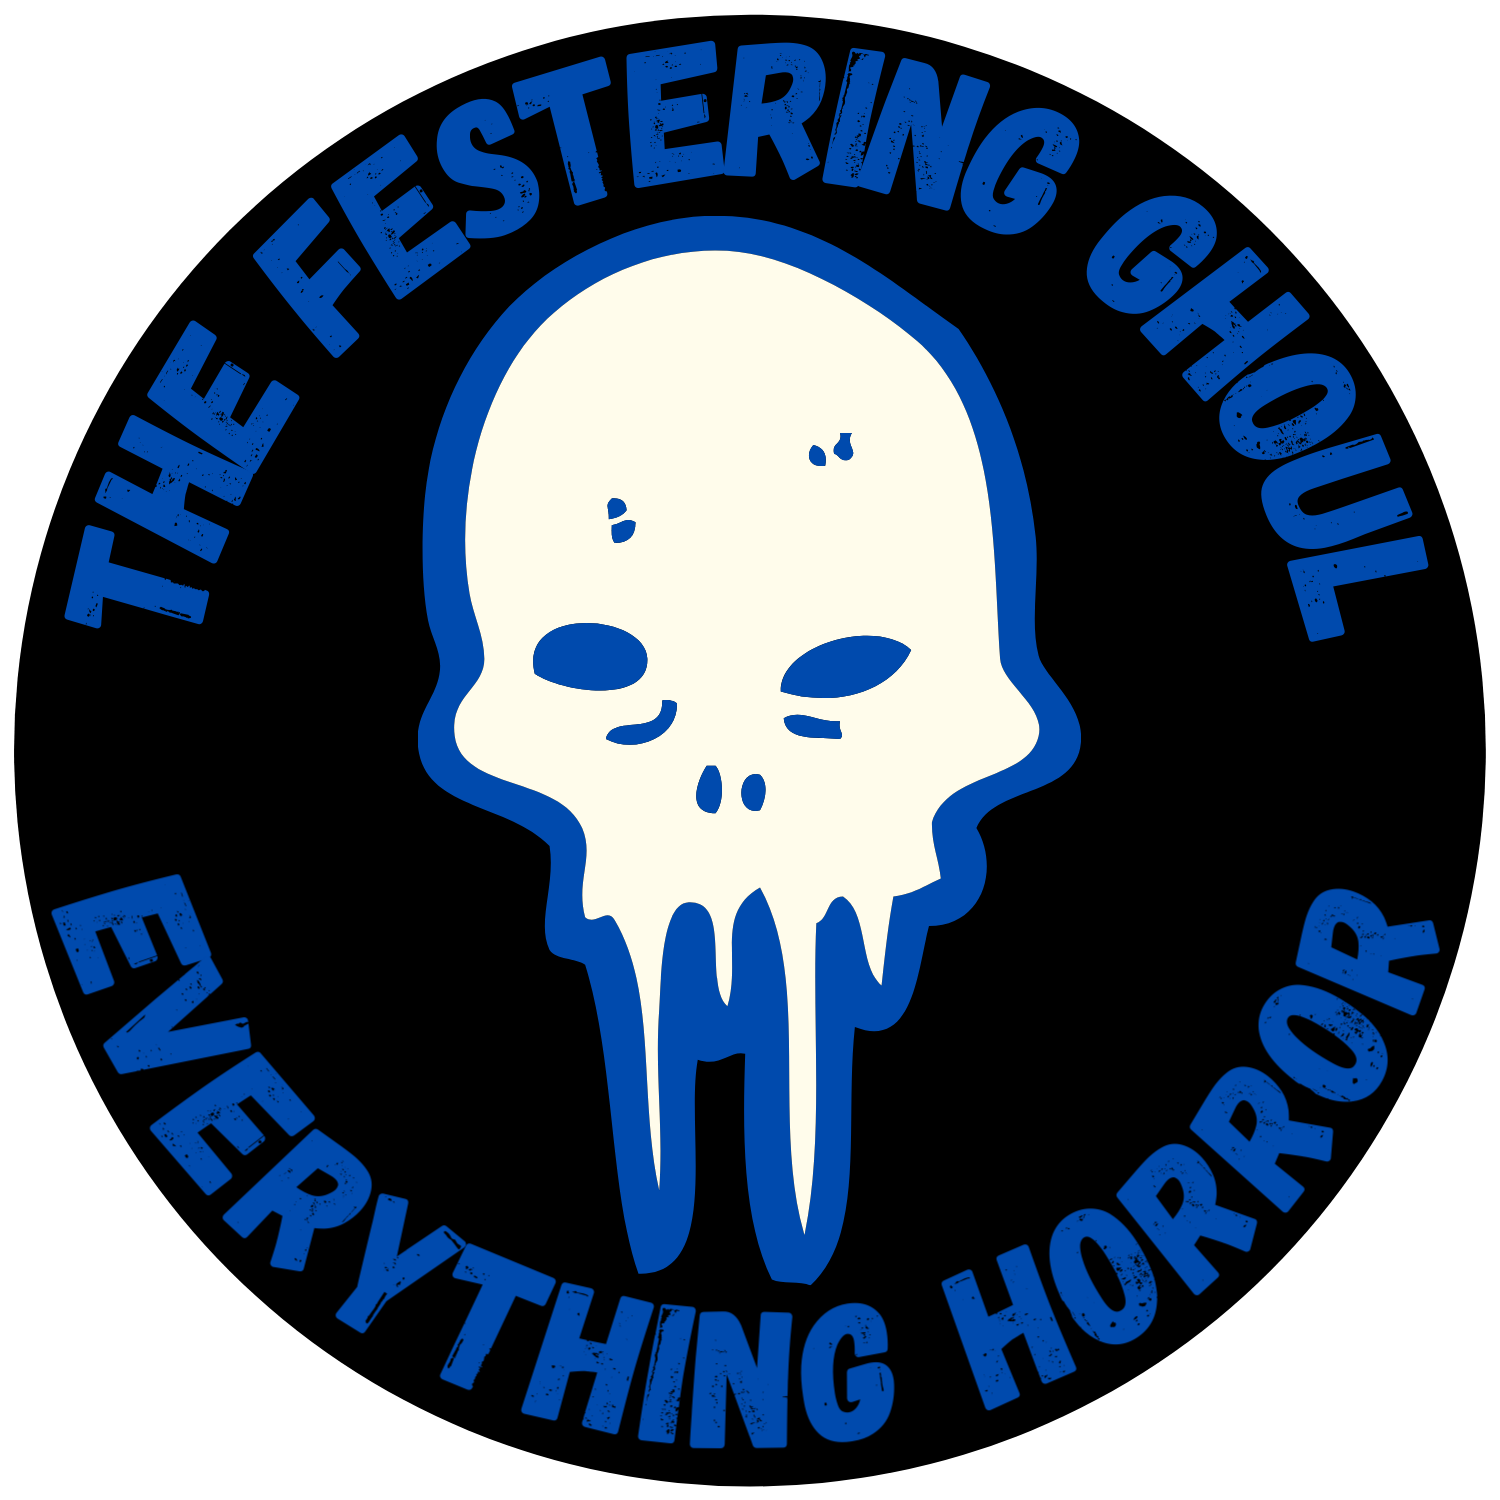 The Festering Ghoul